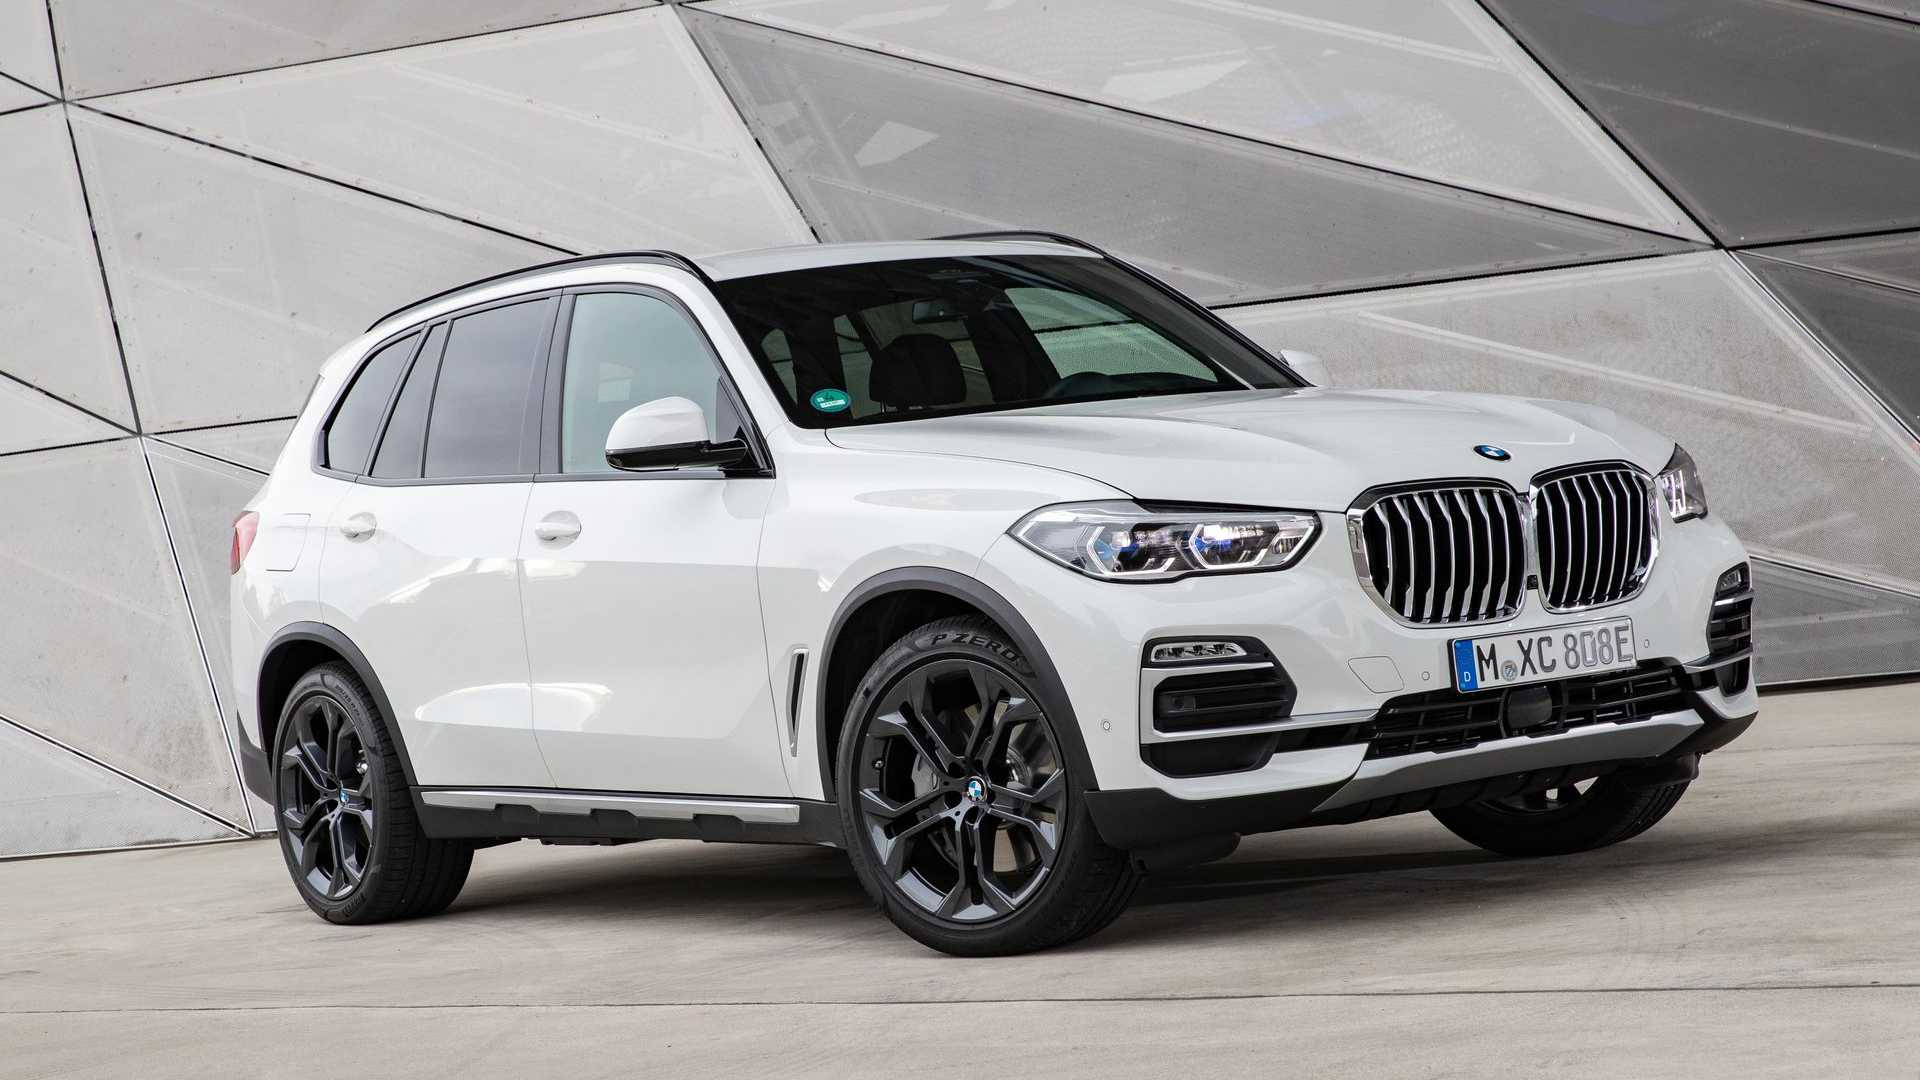 2021 Bmw X5 Xdrive45e Gets Official Epa Range Rating Of 31 Miles On Electric Flipboard